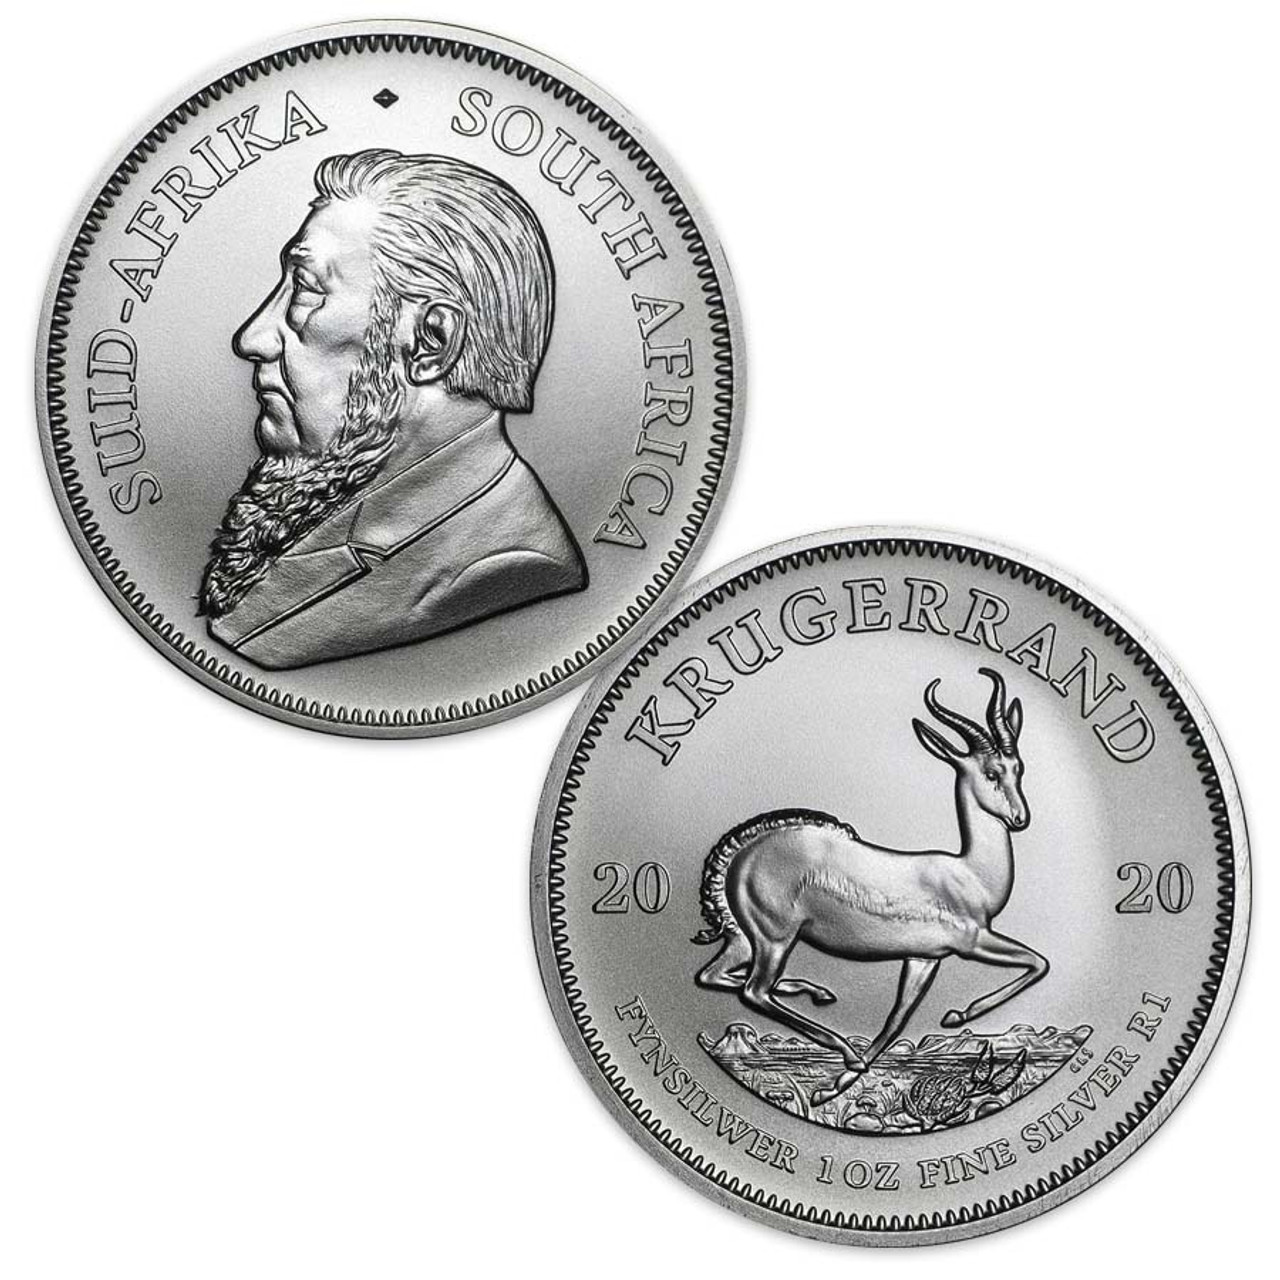 South Africa 2020 Krugerrand 1-Oz. Silver Brilliant Uncirculated Image 1